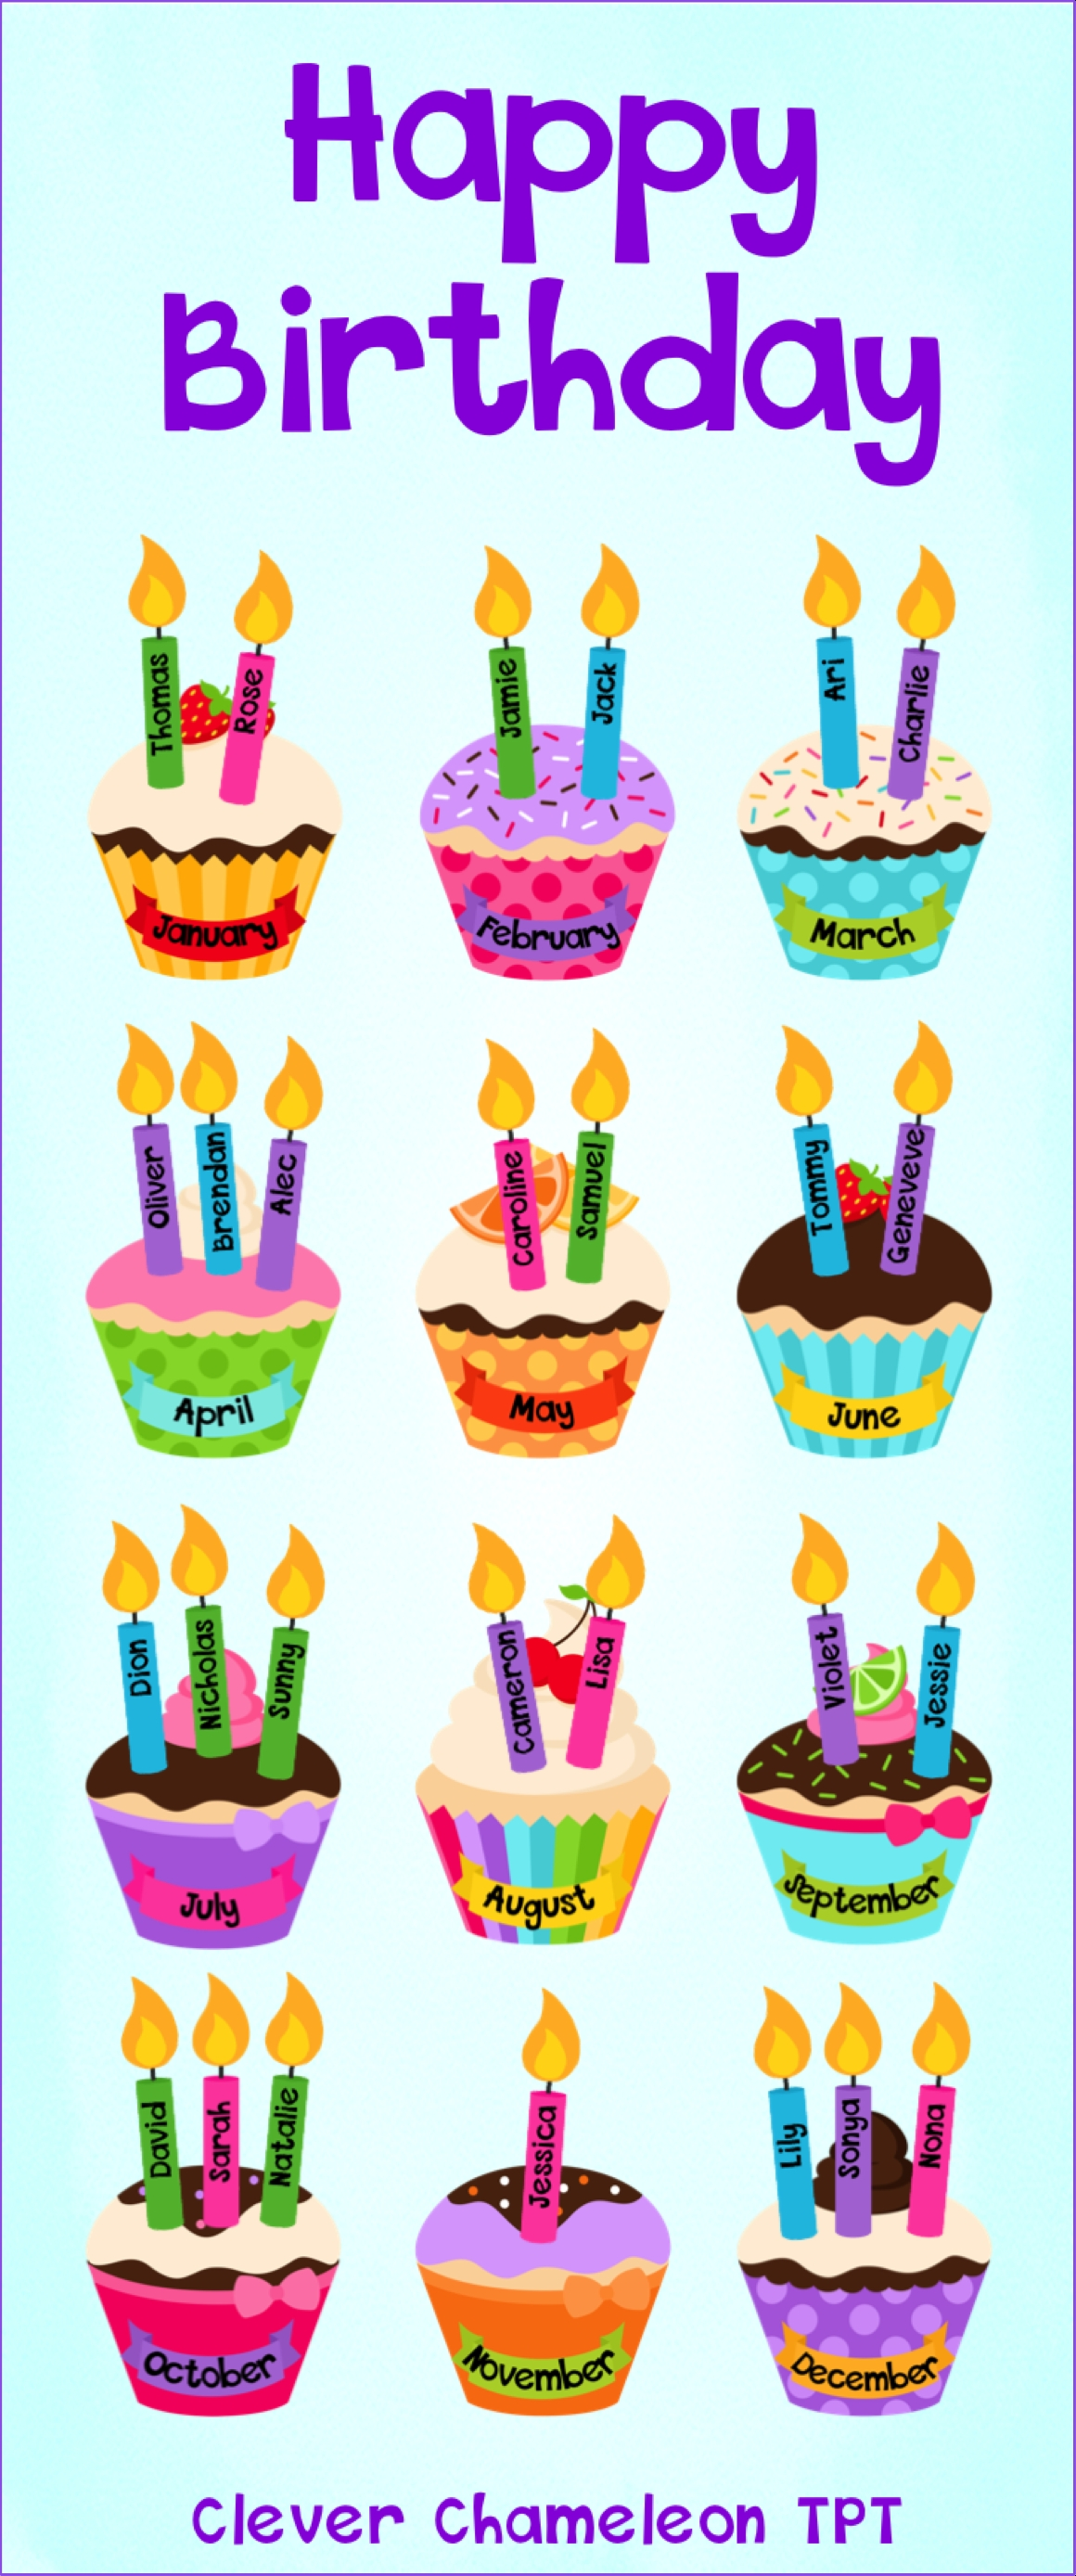 Birthday Cupcakes - Cupcake Birthday Display | Collaboration intended for Cup Cake For Classroom Birthday